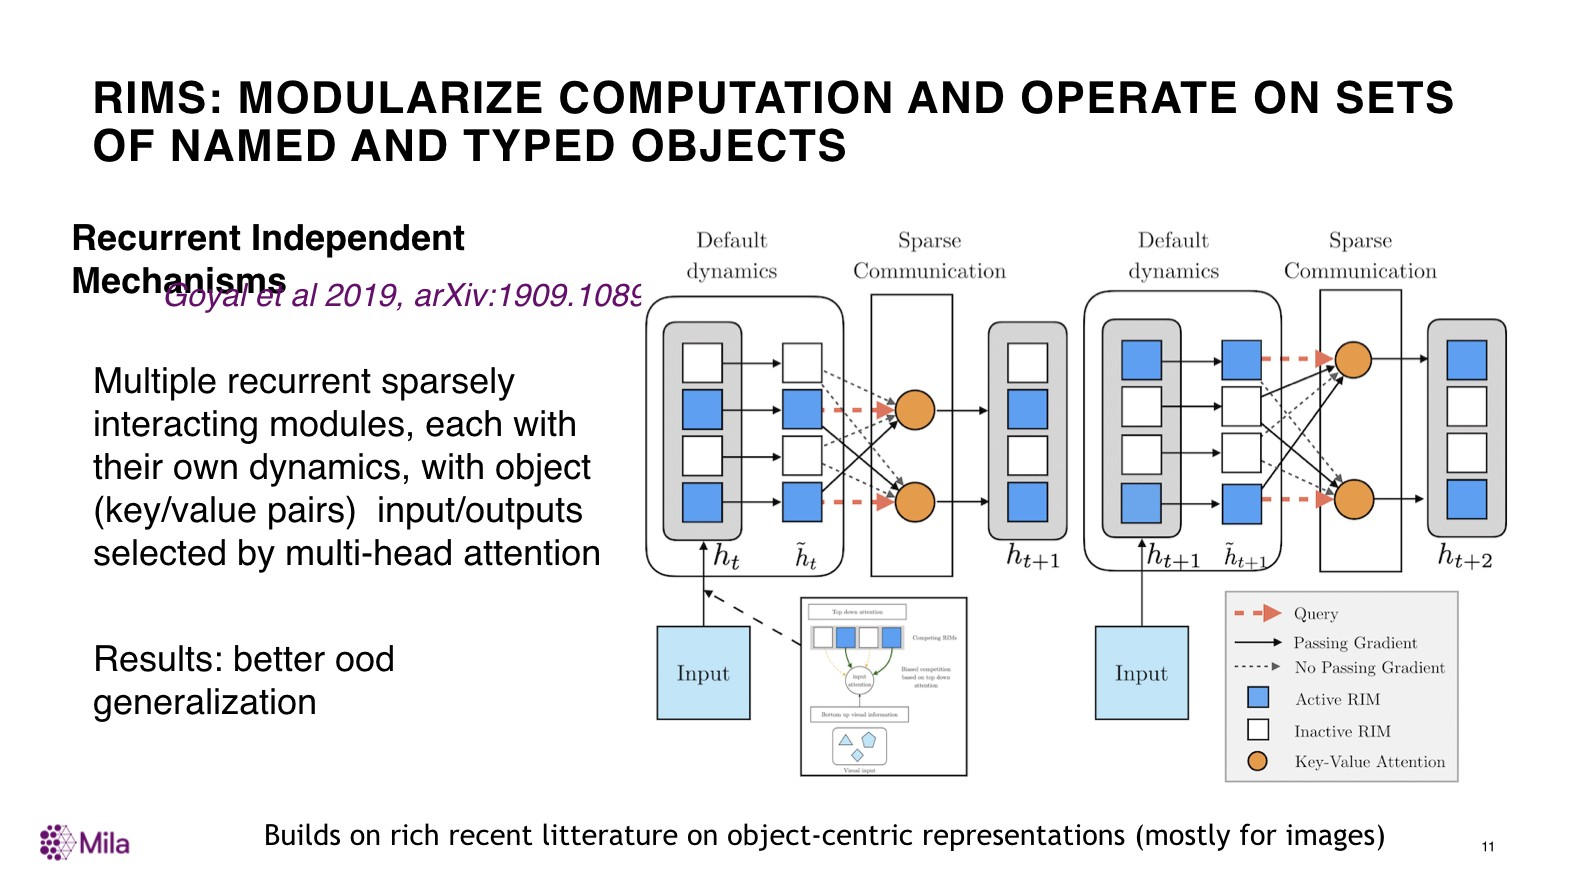 RIMs: modularize computation and operate on sets of named and typed objects